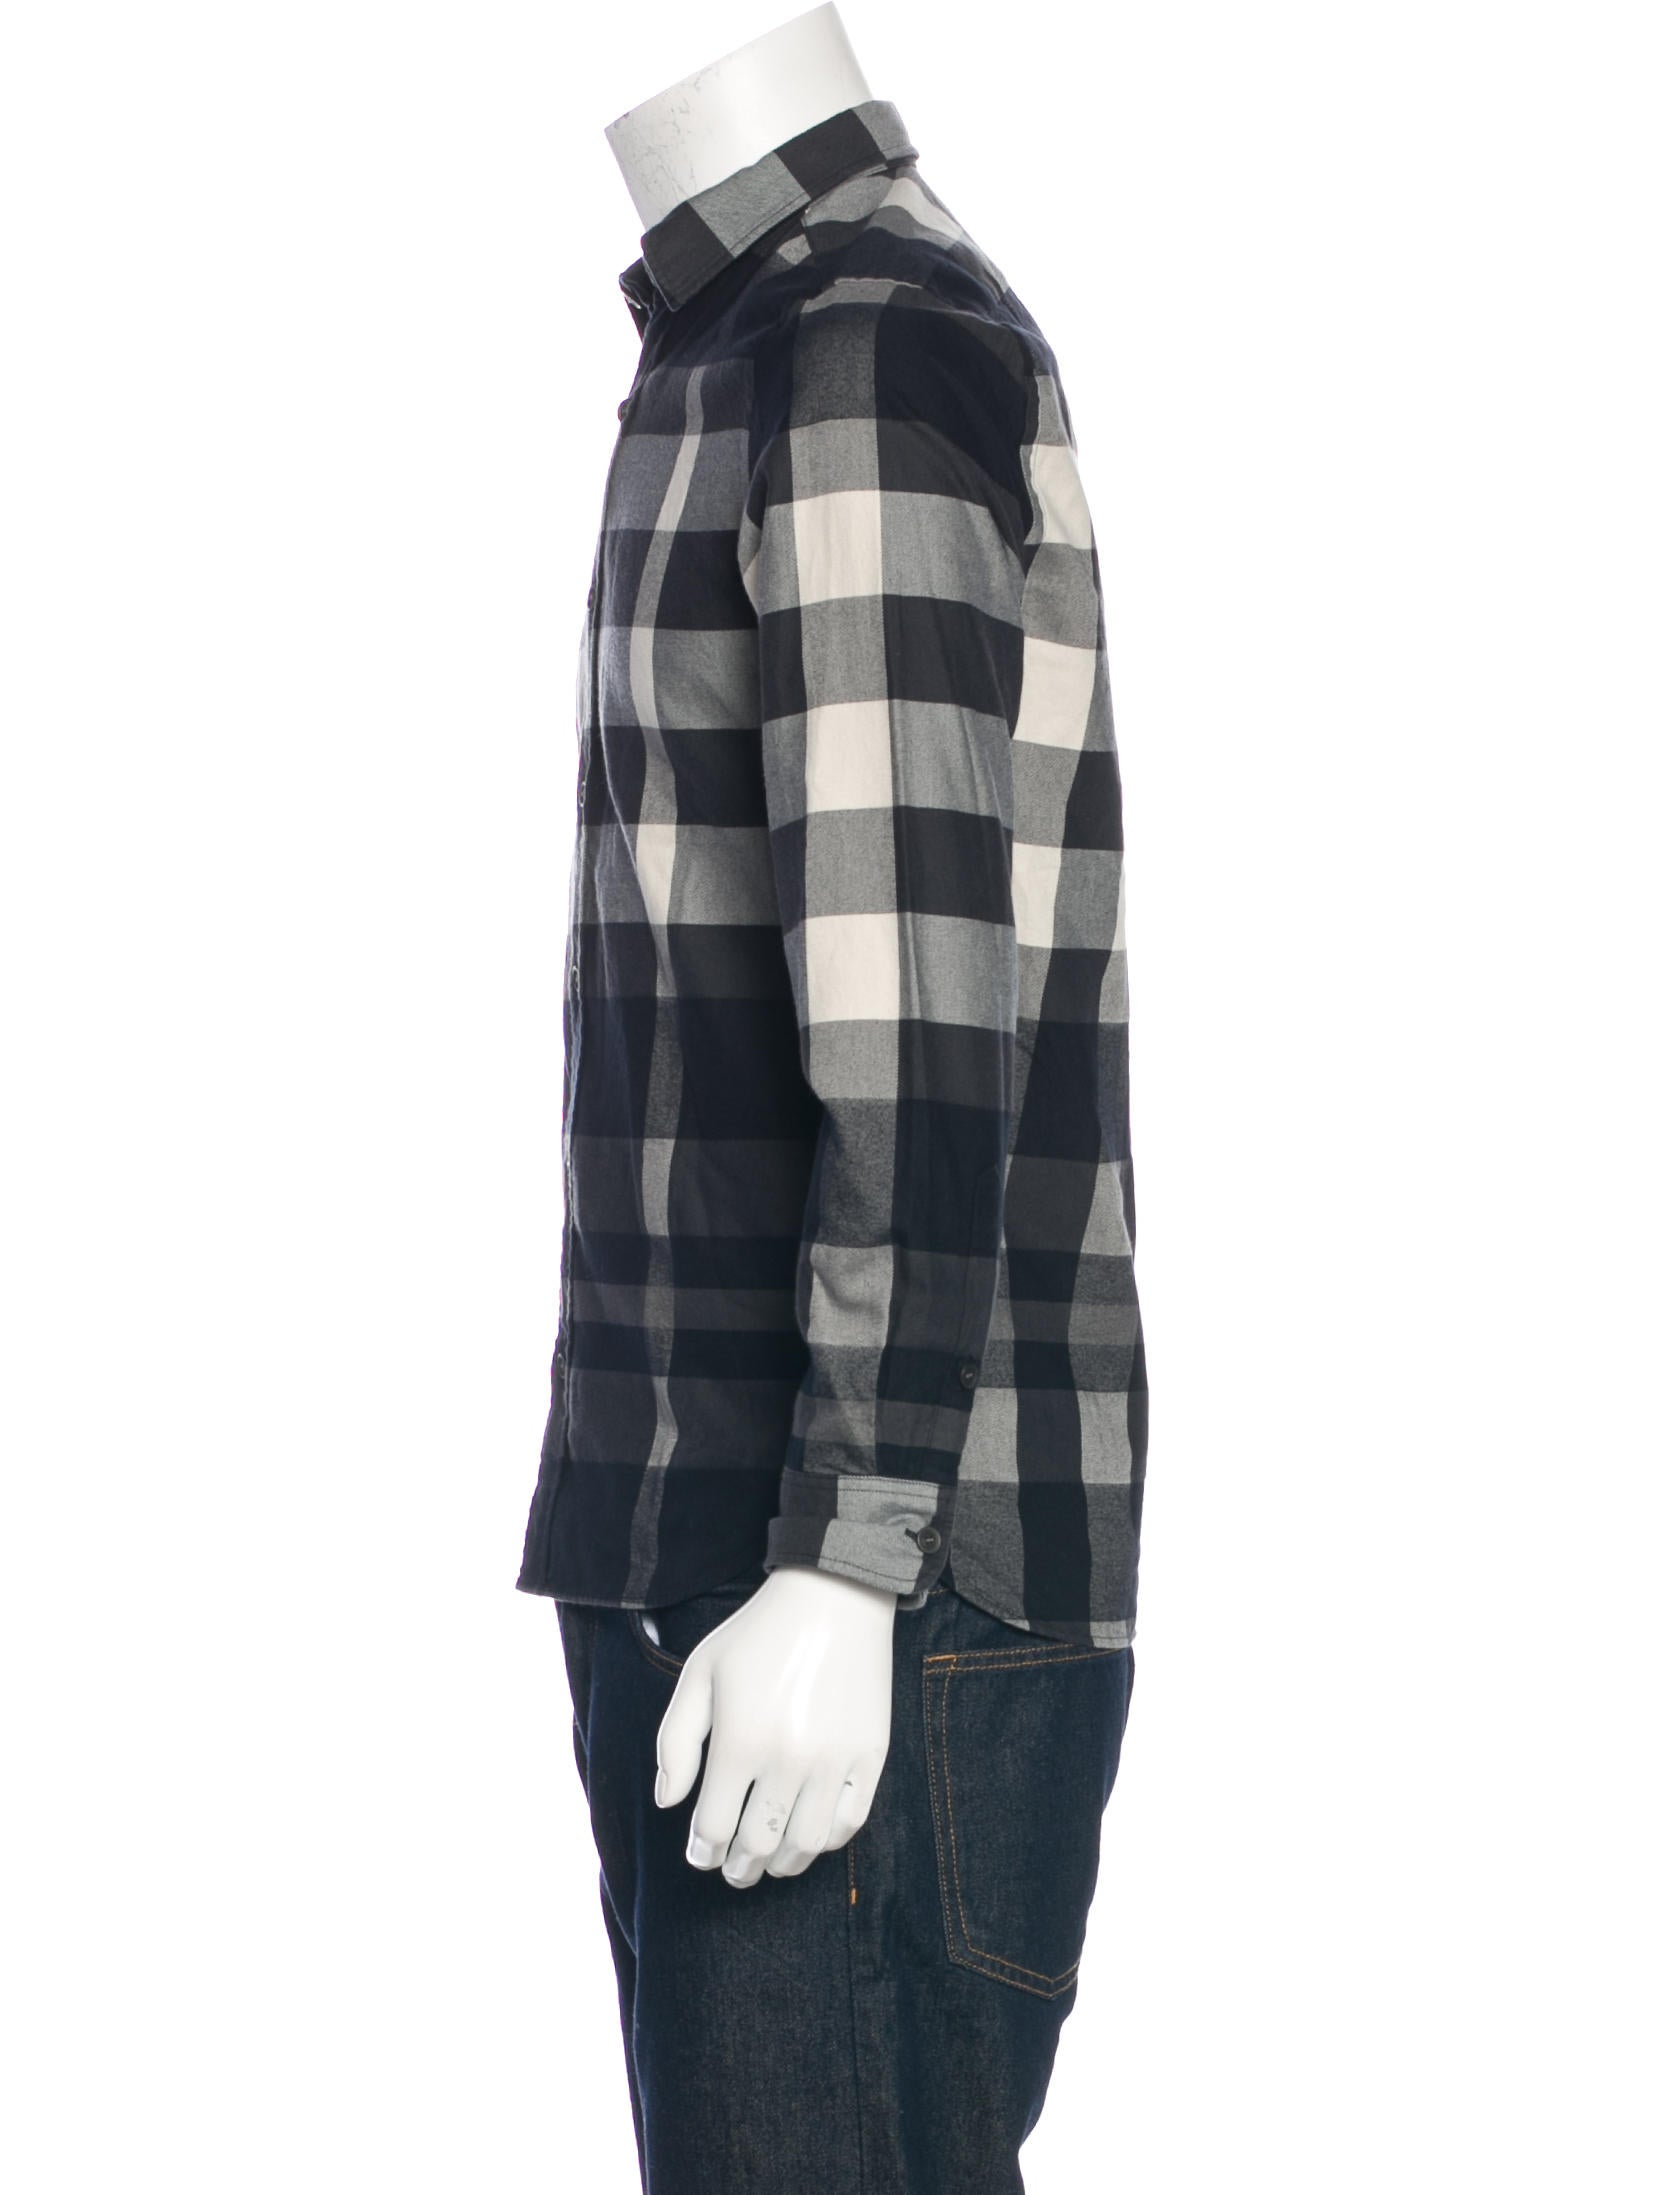 Burberry brit brushed plaid shirt clothing bbr28820 for Burberry brit green plaid shirt